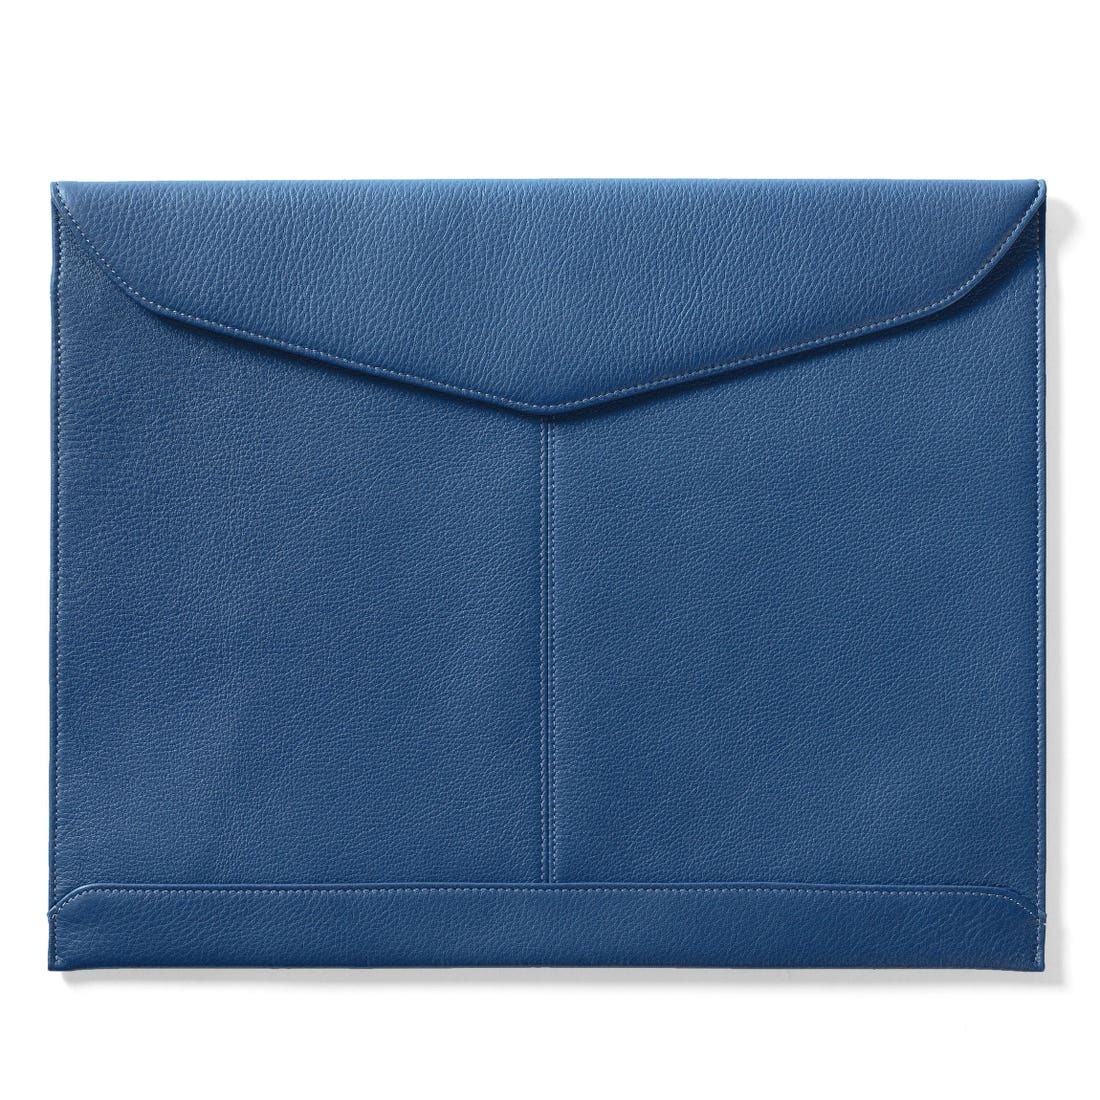 Laptop Envelope